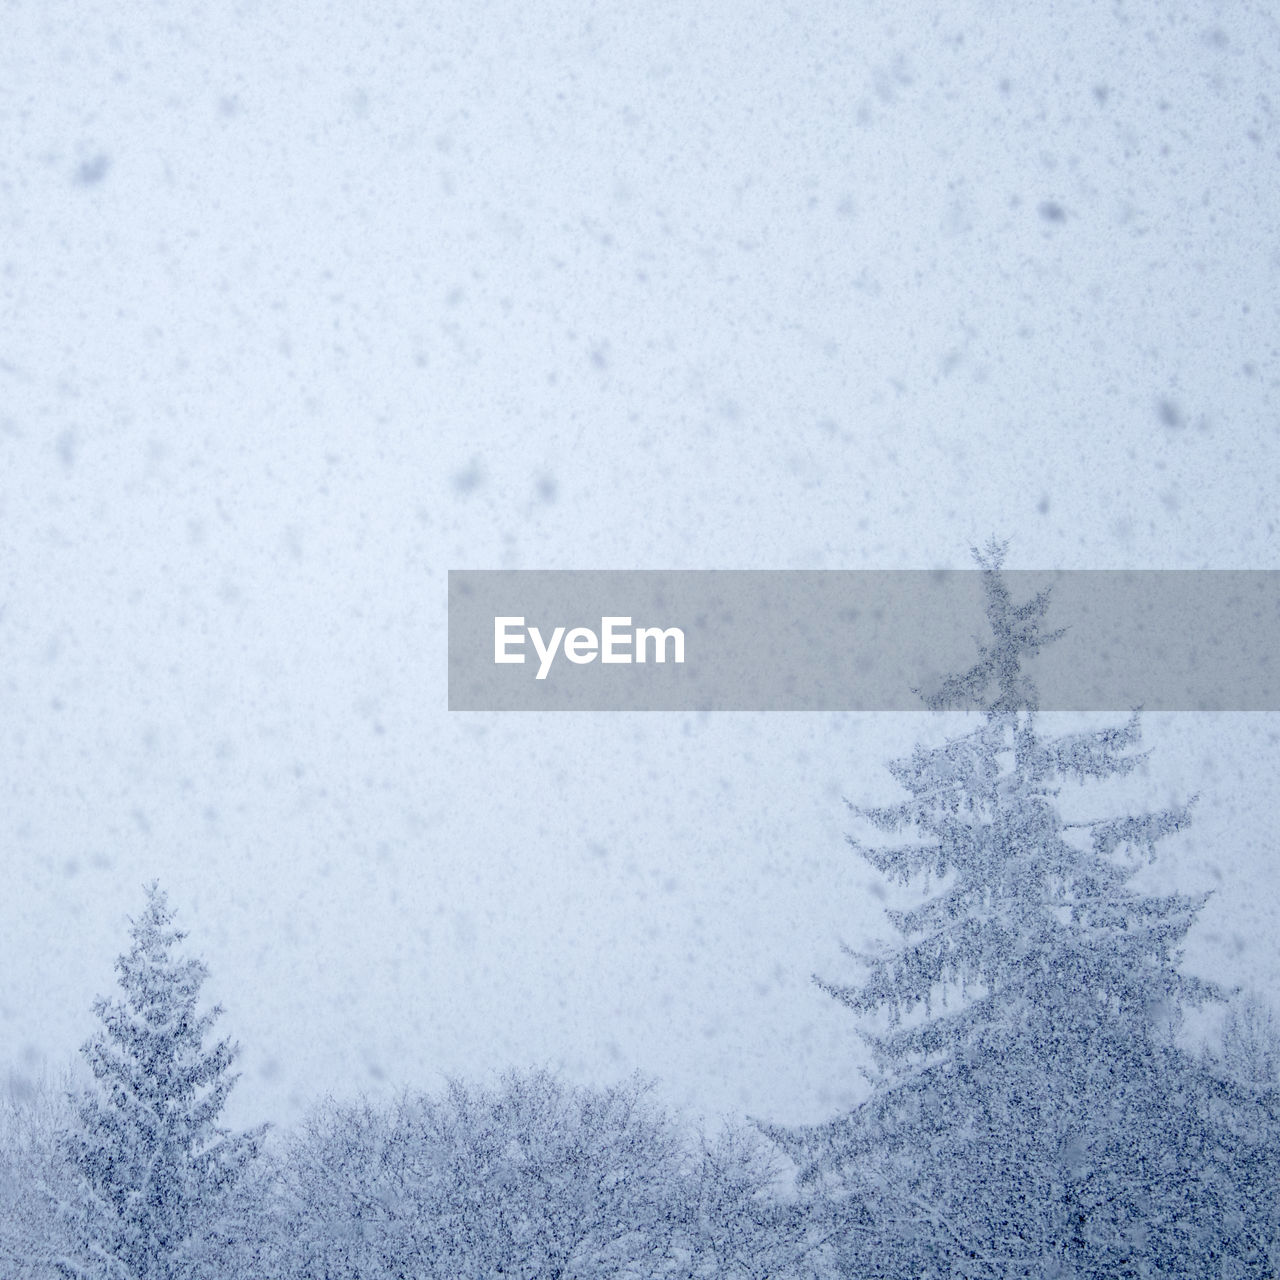 snow, winter, cold temperature, snowflake, snowing, weather, frozen, nature, backgrounds, blizzard, frost, christmas, ice crystal, ice, tree, no people, spruce tree, outdoors, day, tranquil scene, forest, fir tree, beauty in nature, scenics, landscape, sky, frozen water, snowdrift, freshness, close-up